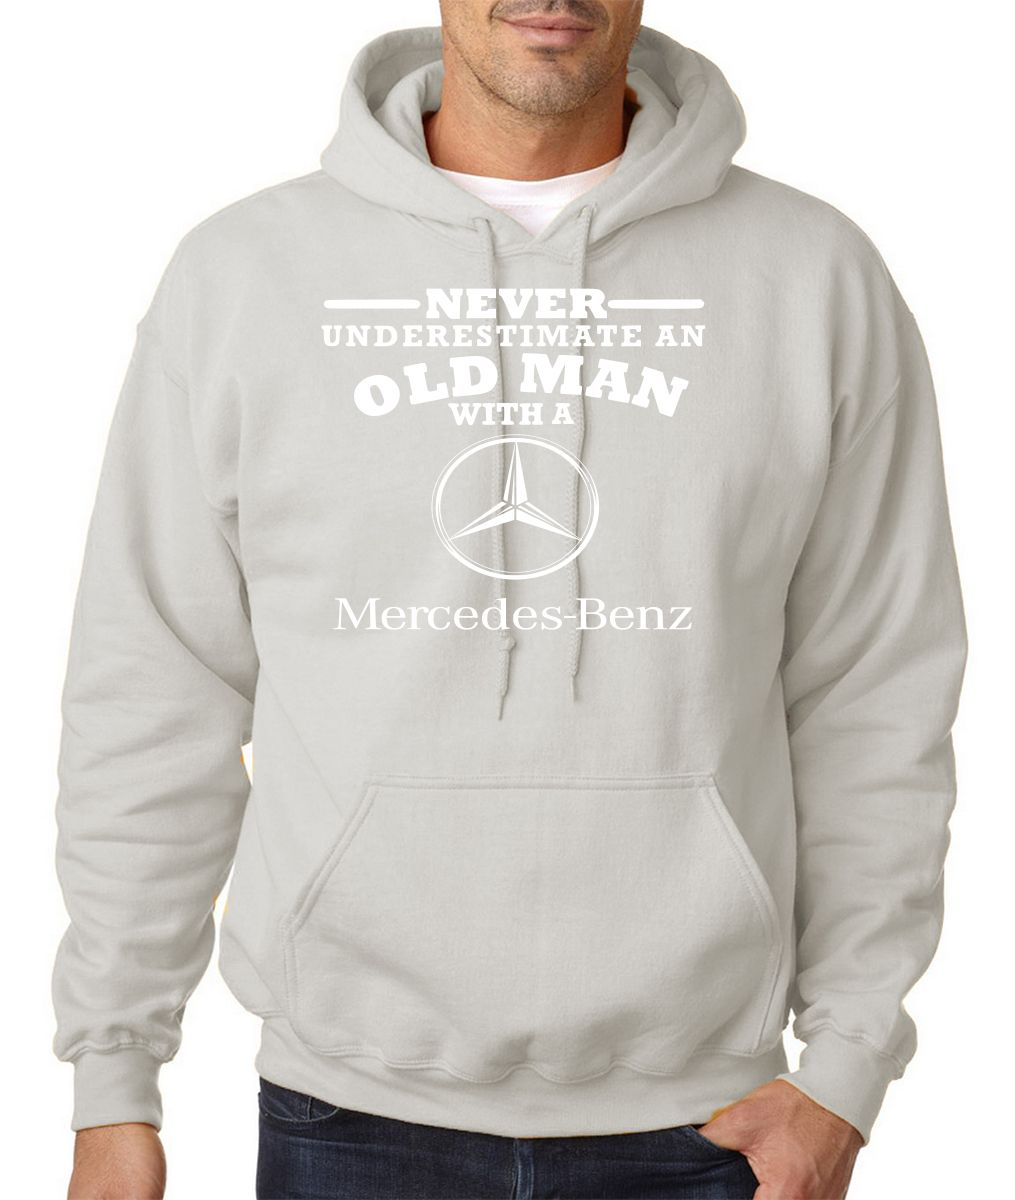 Mercedes benz never underestimate an old man mens hoodies for Mercedes benz sweater